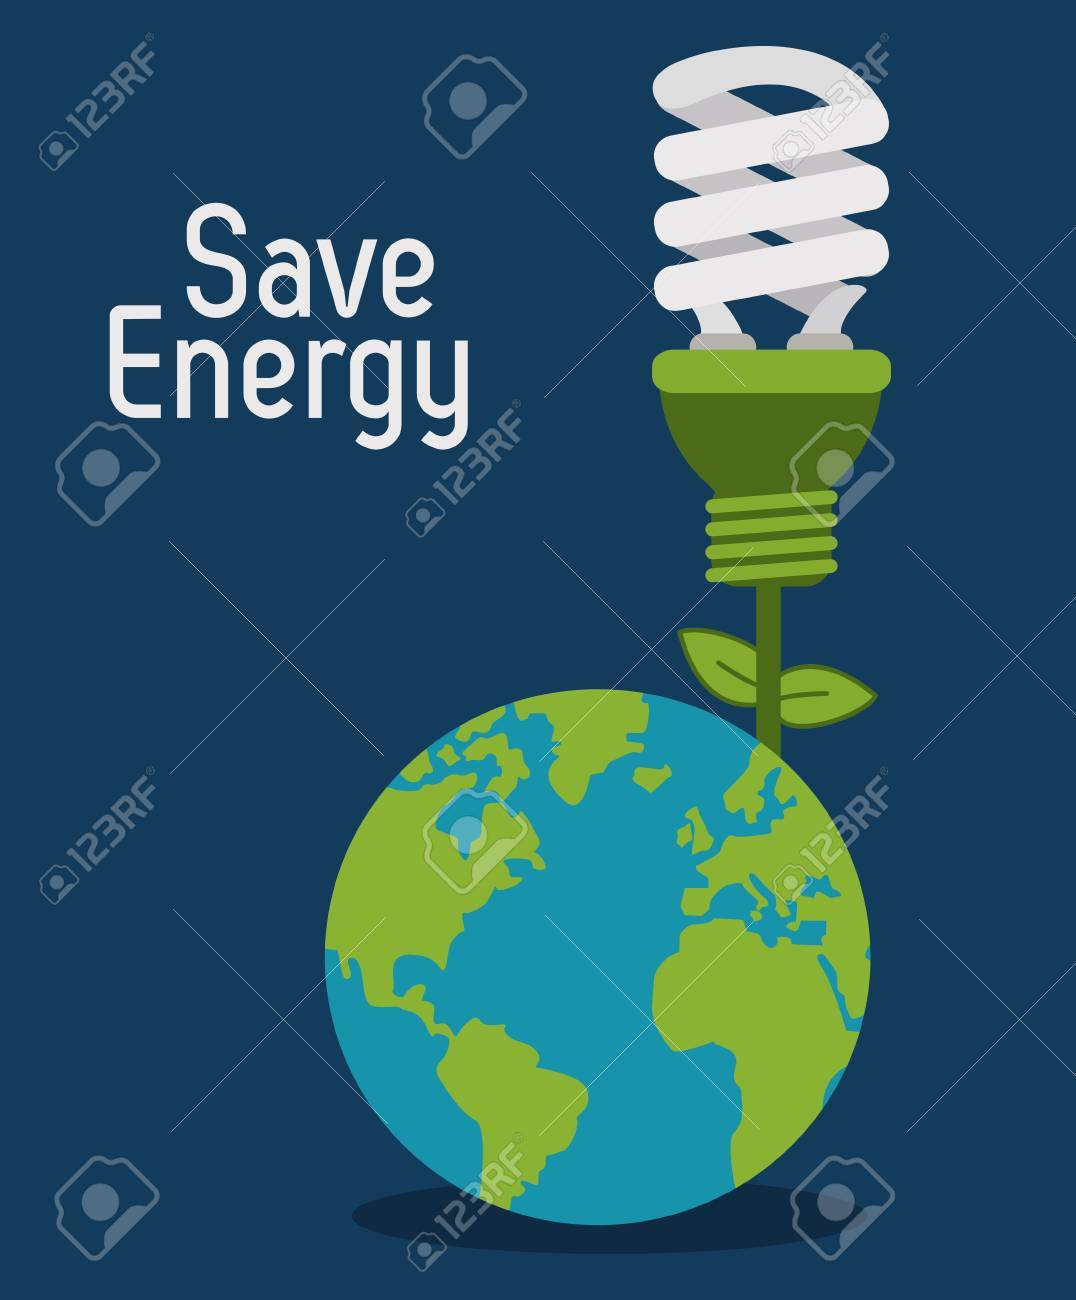 Save energy concept with eco icons design, vector illustration 10 eps graphic. - 46523650